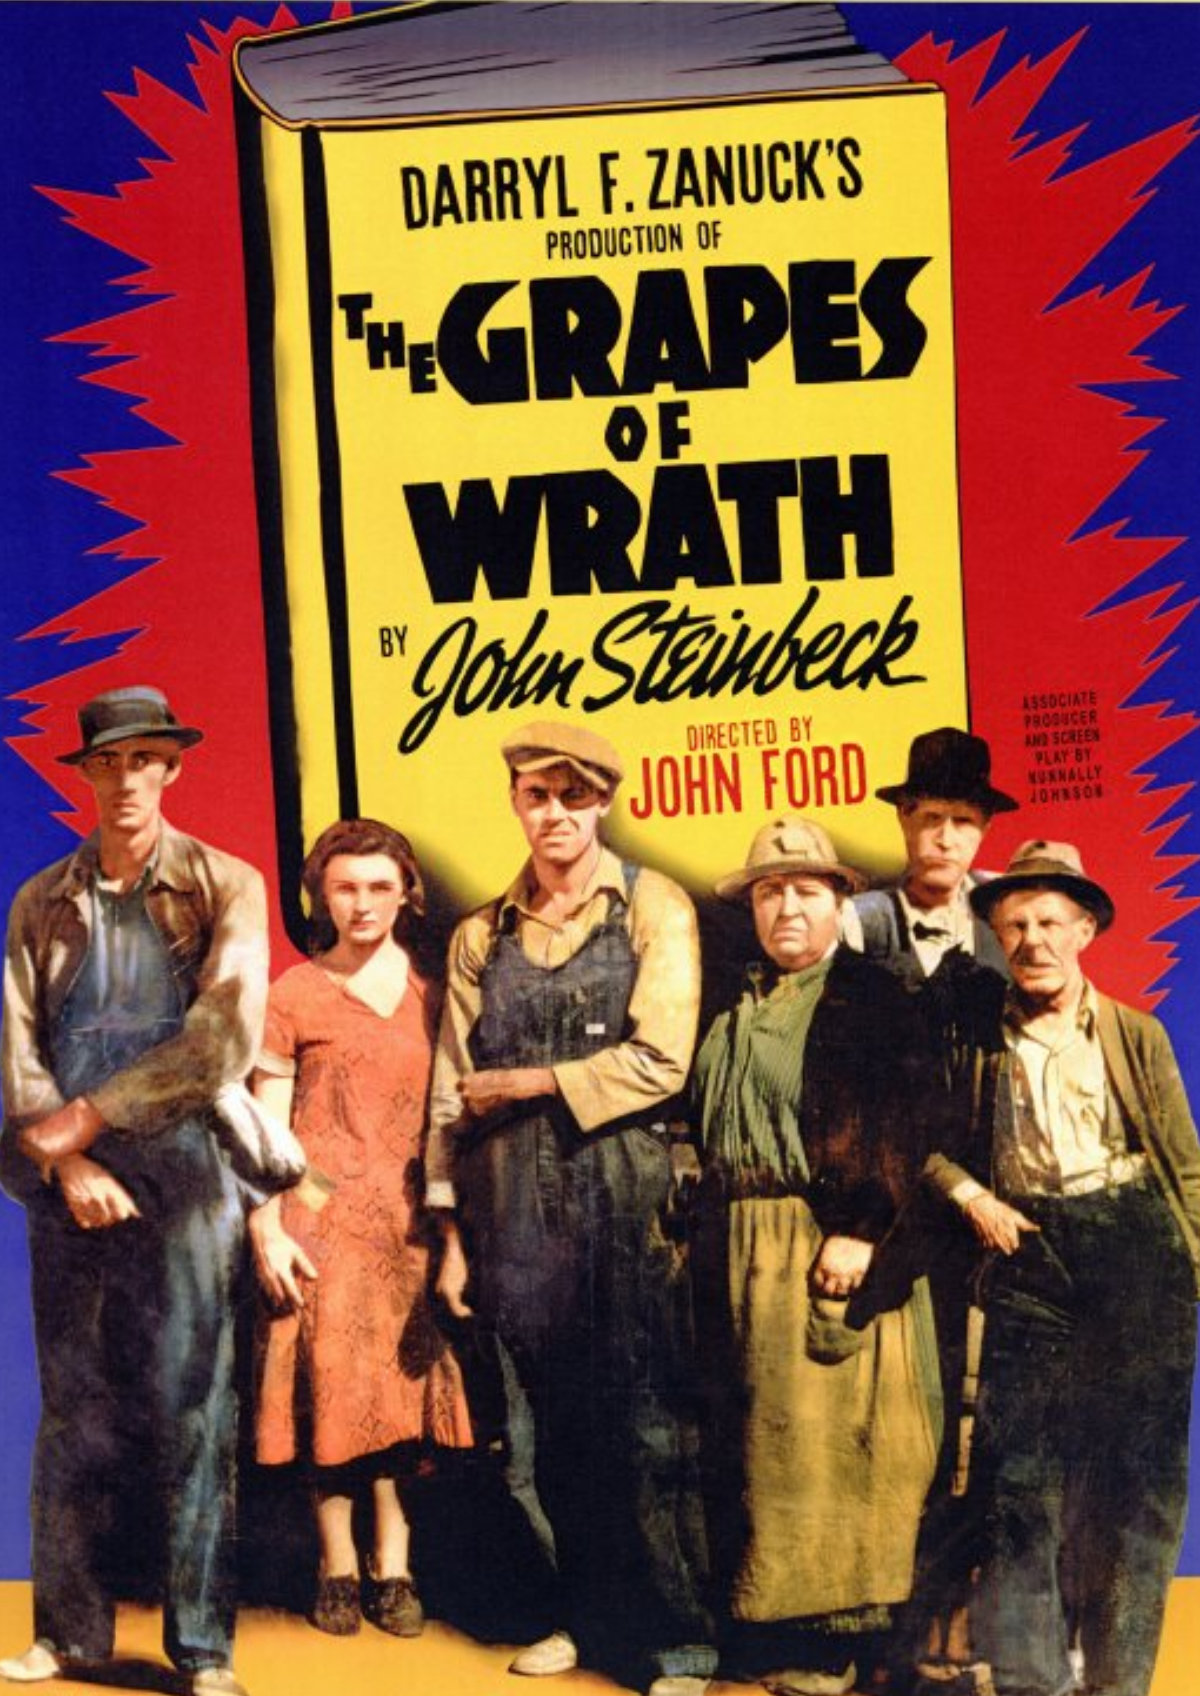 'The Grapes Of Wrath' movie poster